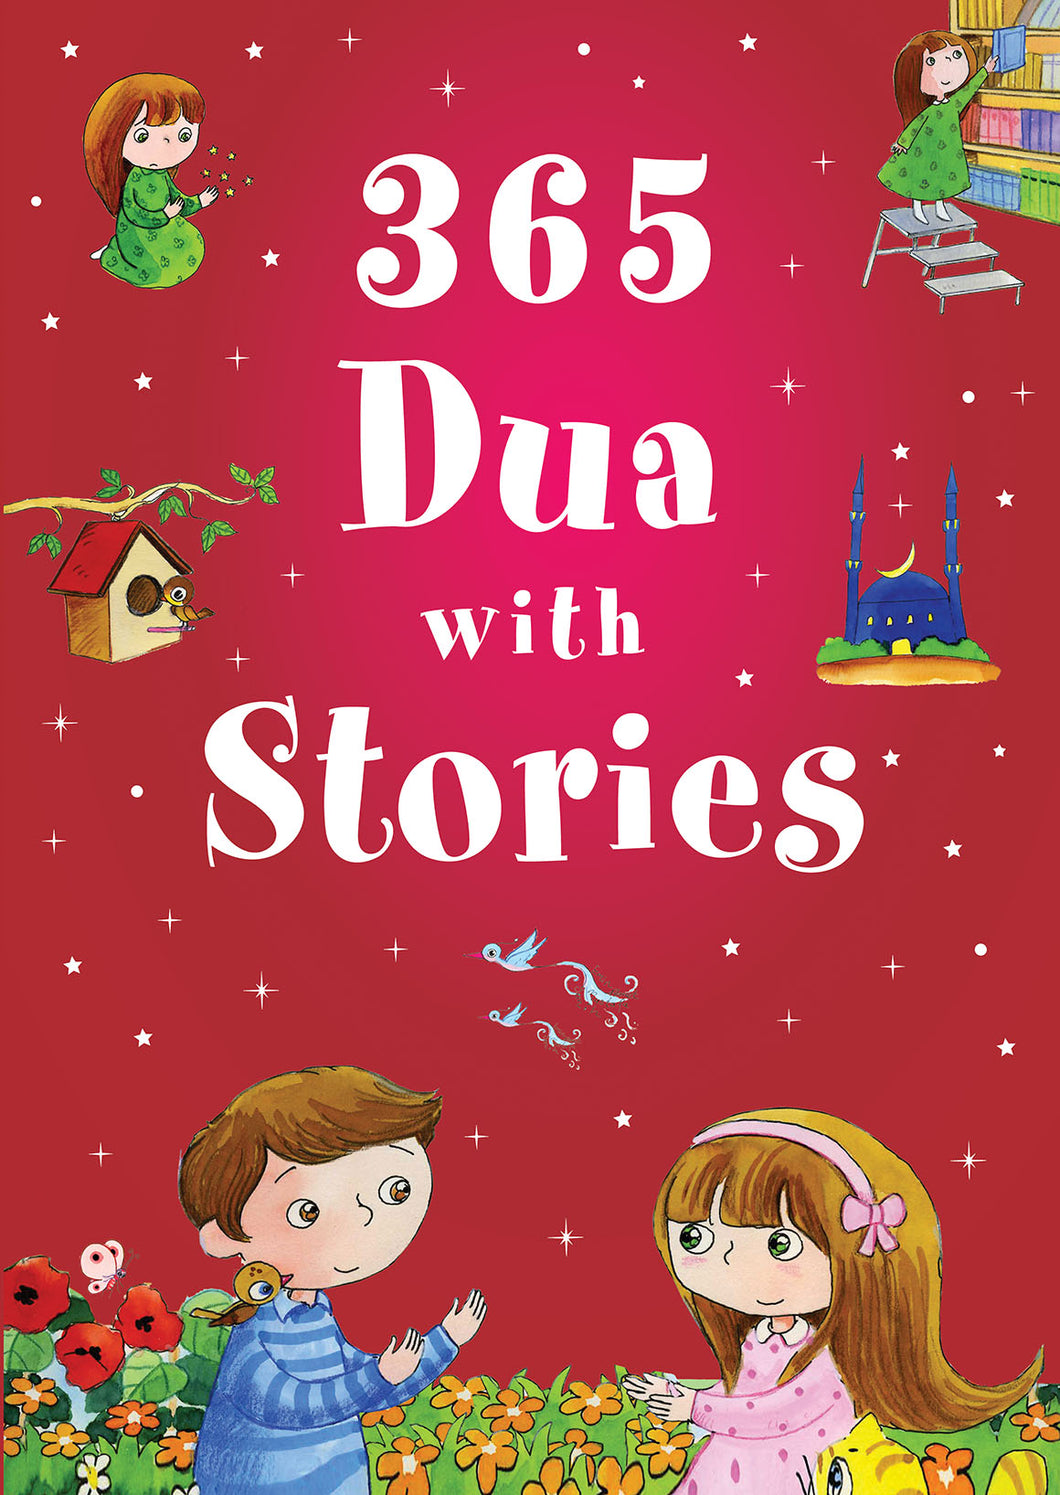 365 Dua with Stories (HB) - Baitul Hikmah Islamic Book and Gift Store